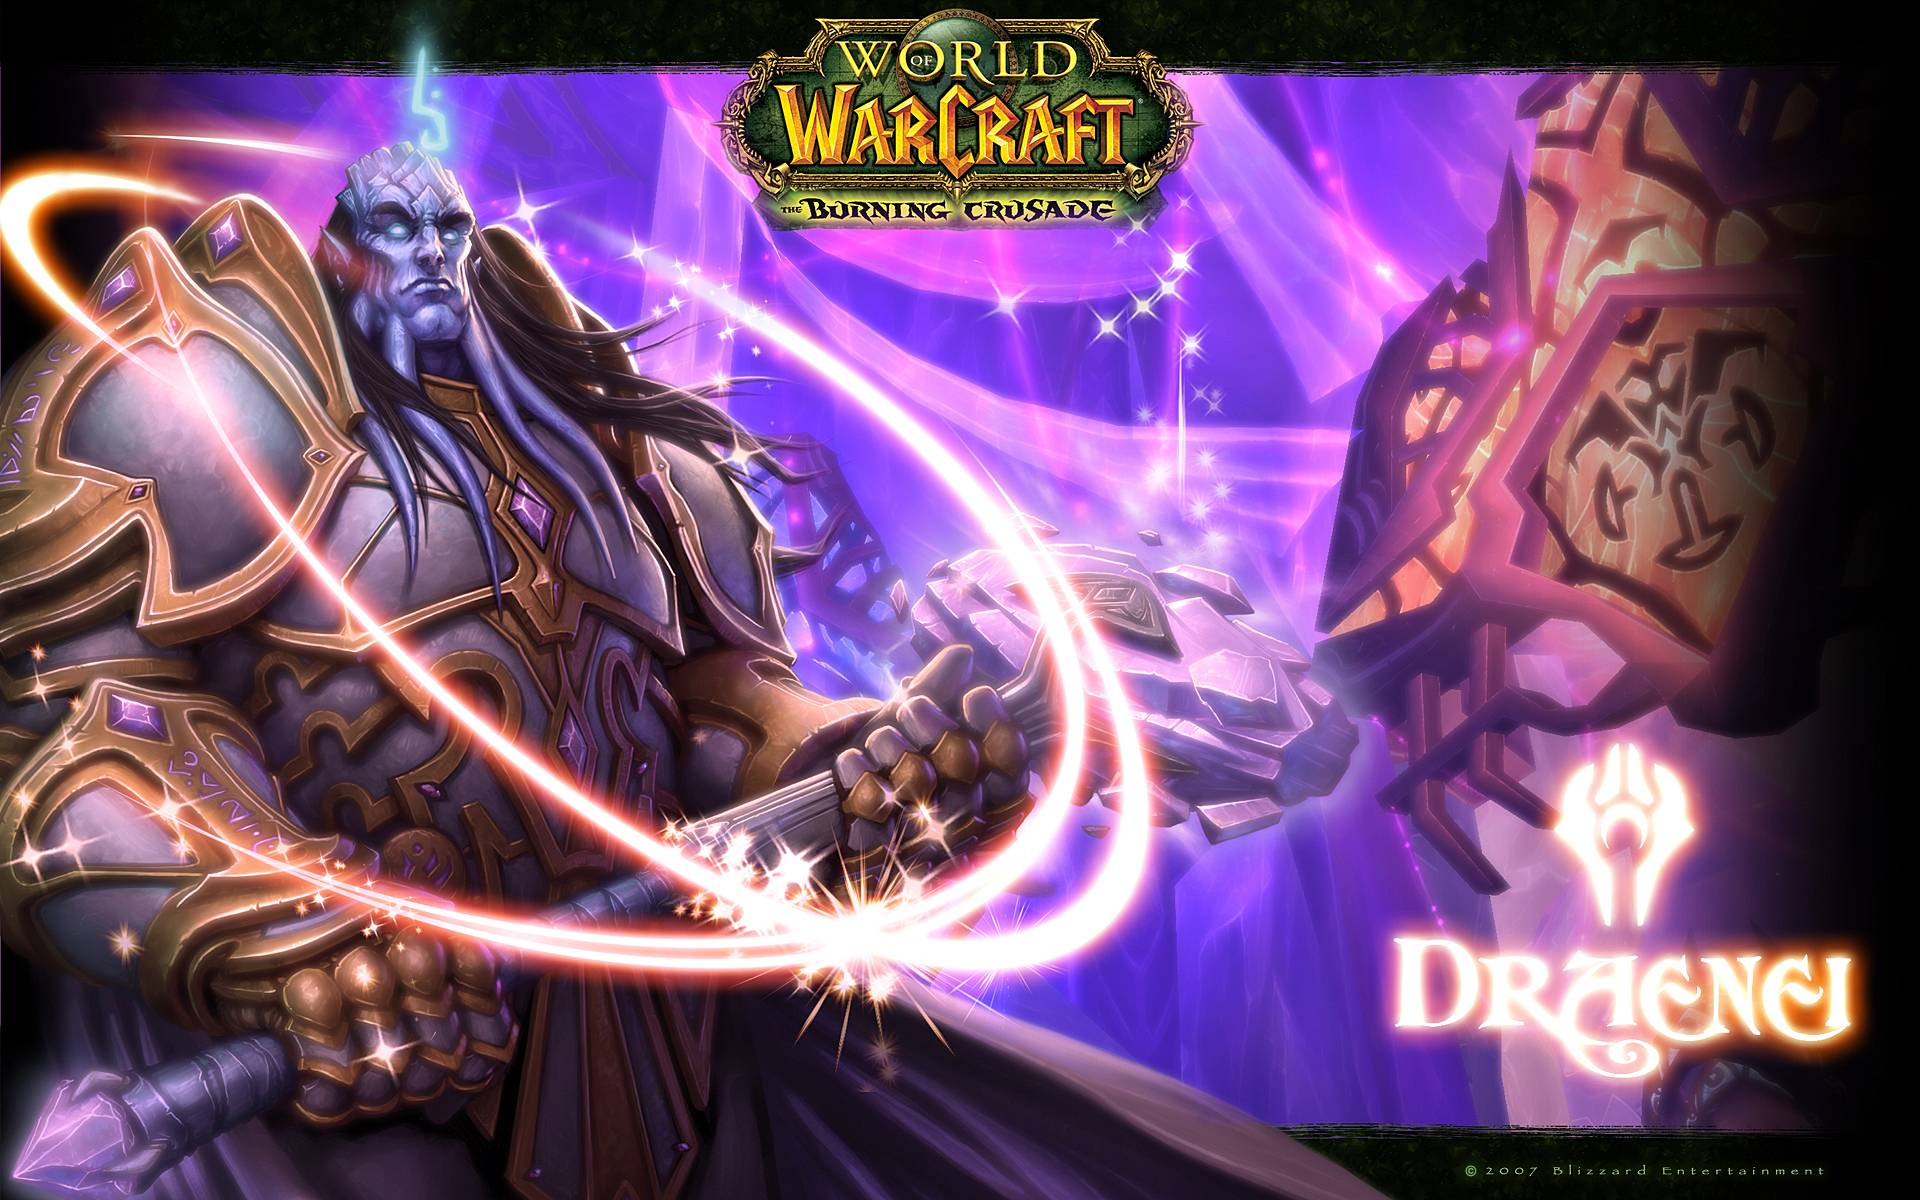 World of Warcraft draenie porn videos nackt streaming